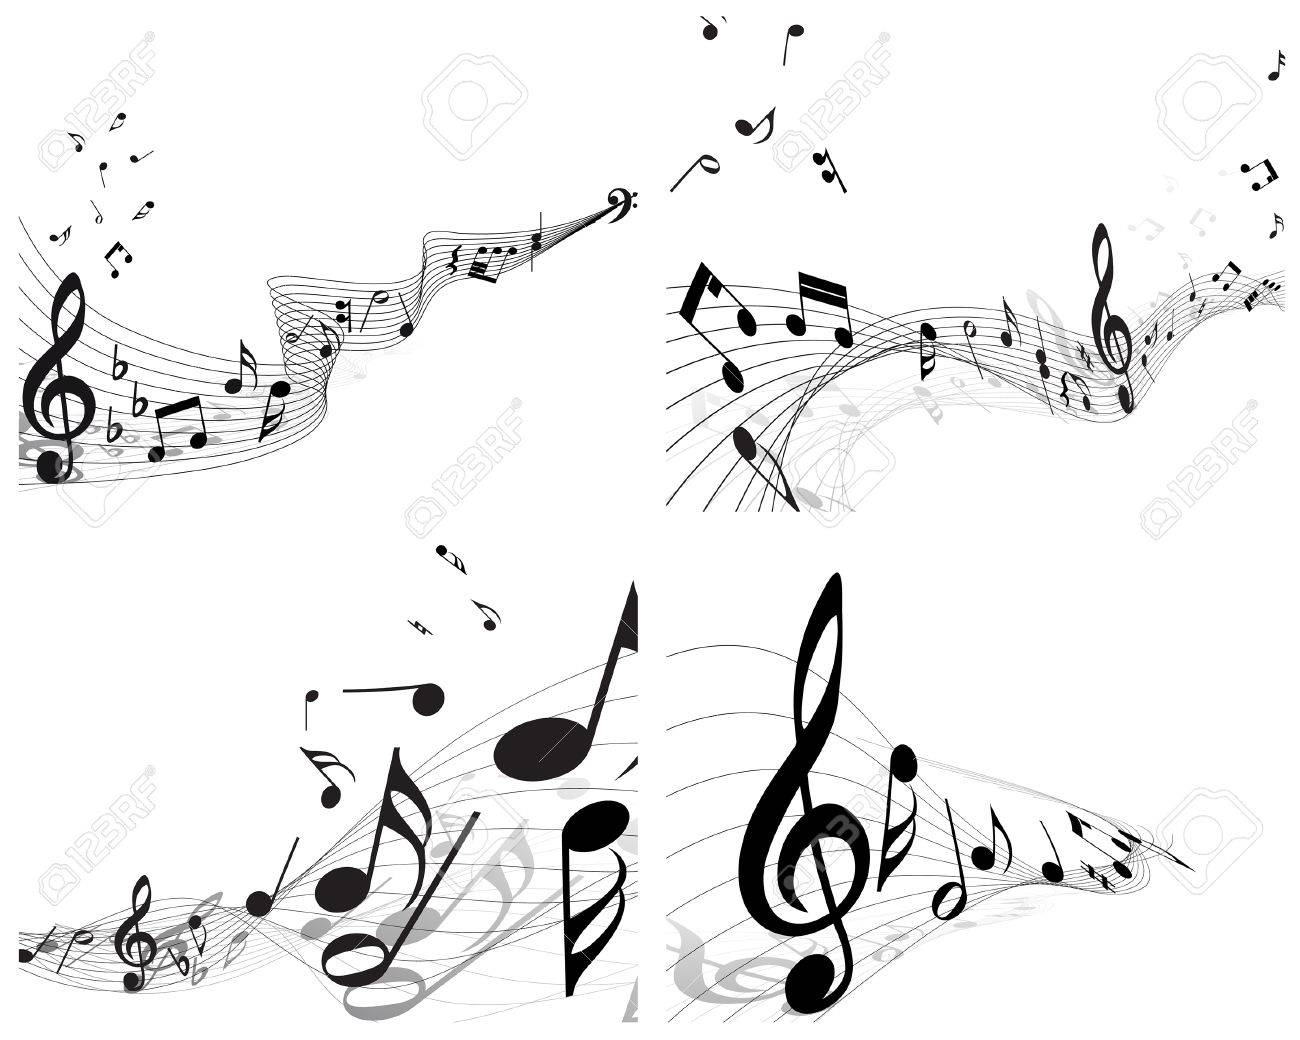 Vector musical notes staff backgrounds set for design use Stock Vector - 6333945